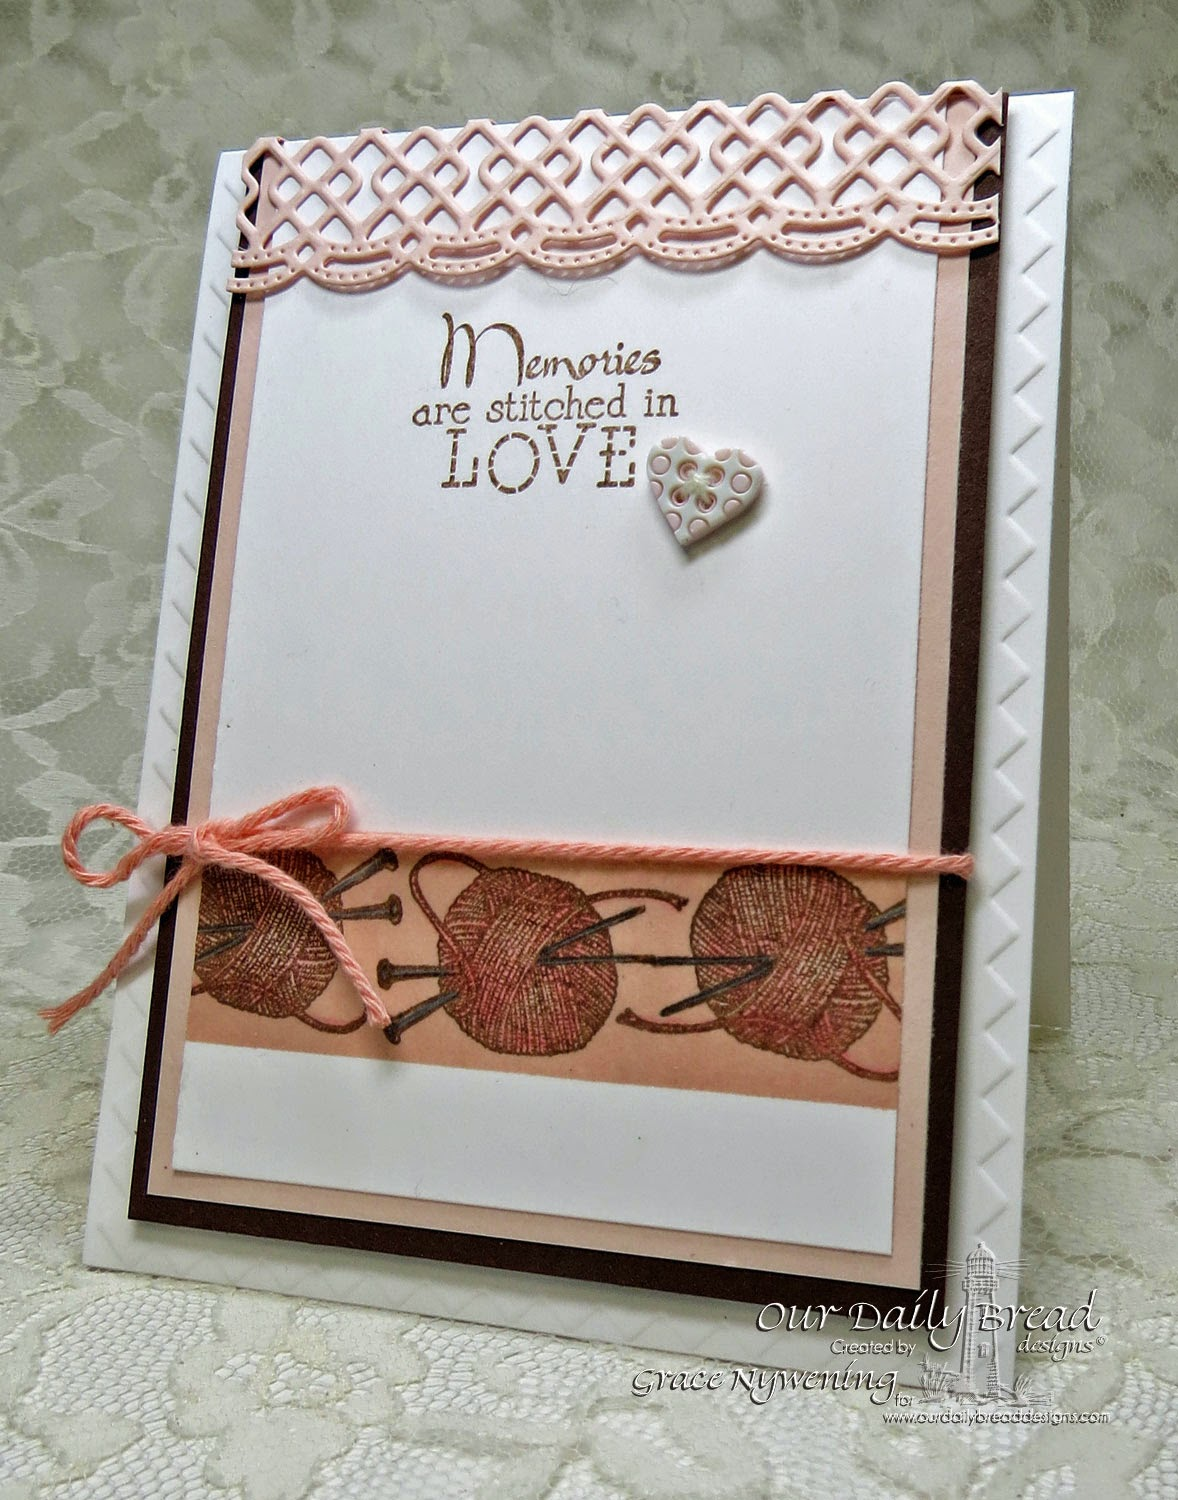 ODBD stamps: Hand Knit, Stitches, Beautiful Border Dies, designed by Grace Nywening